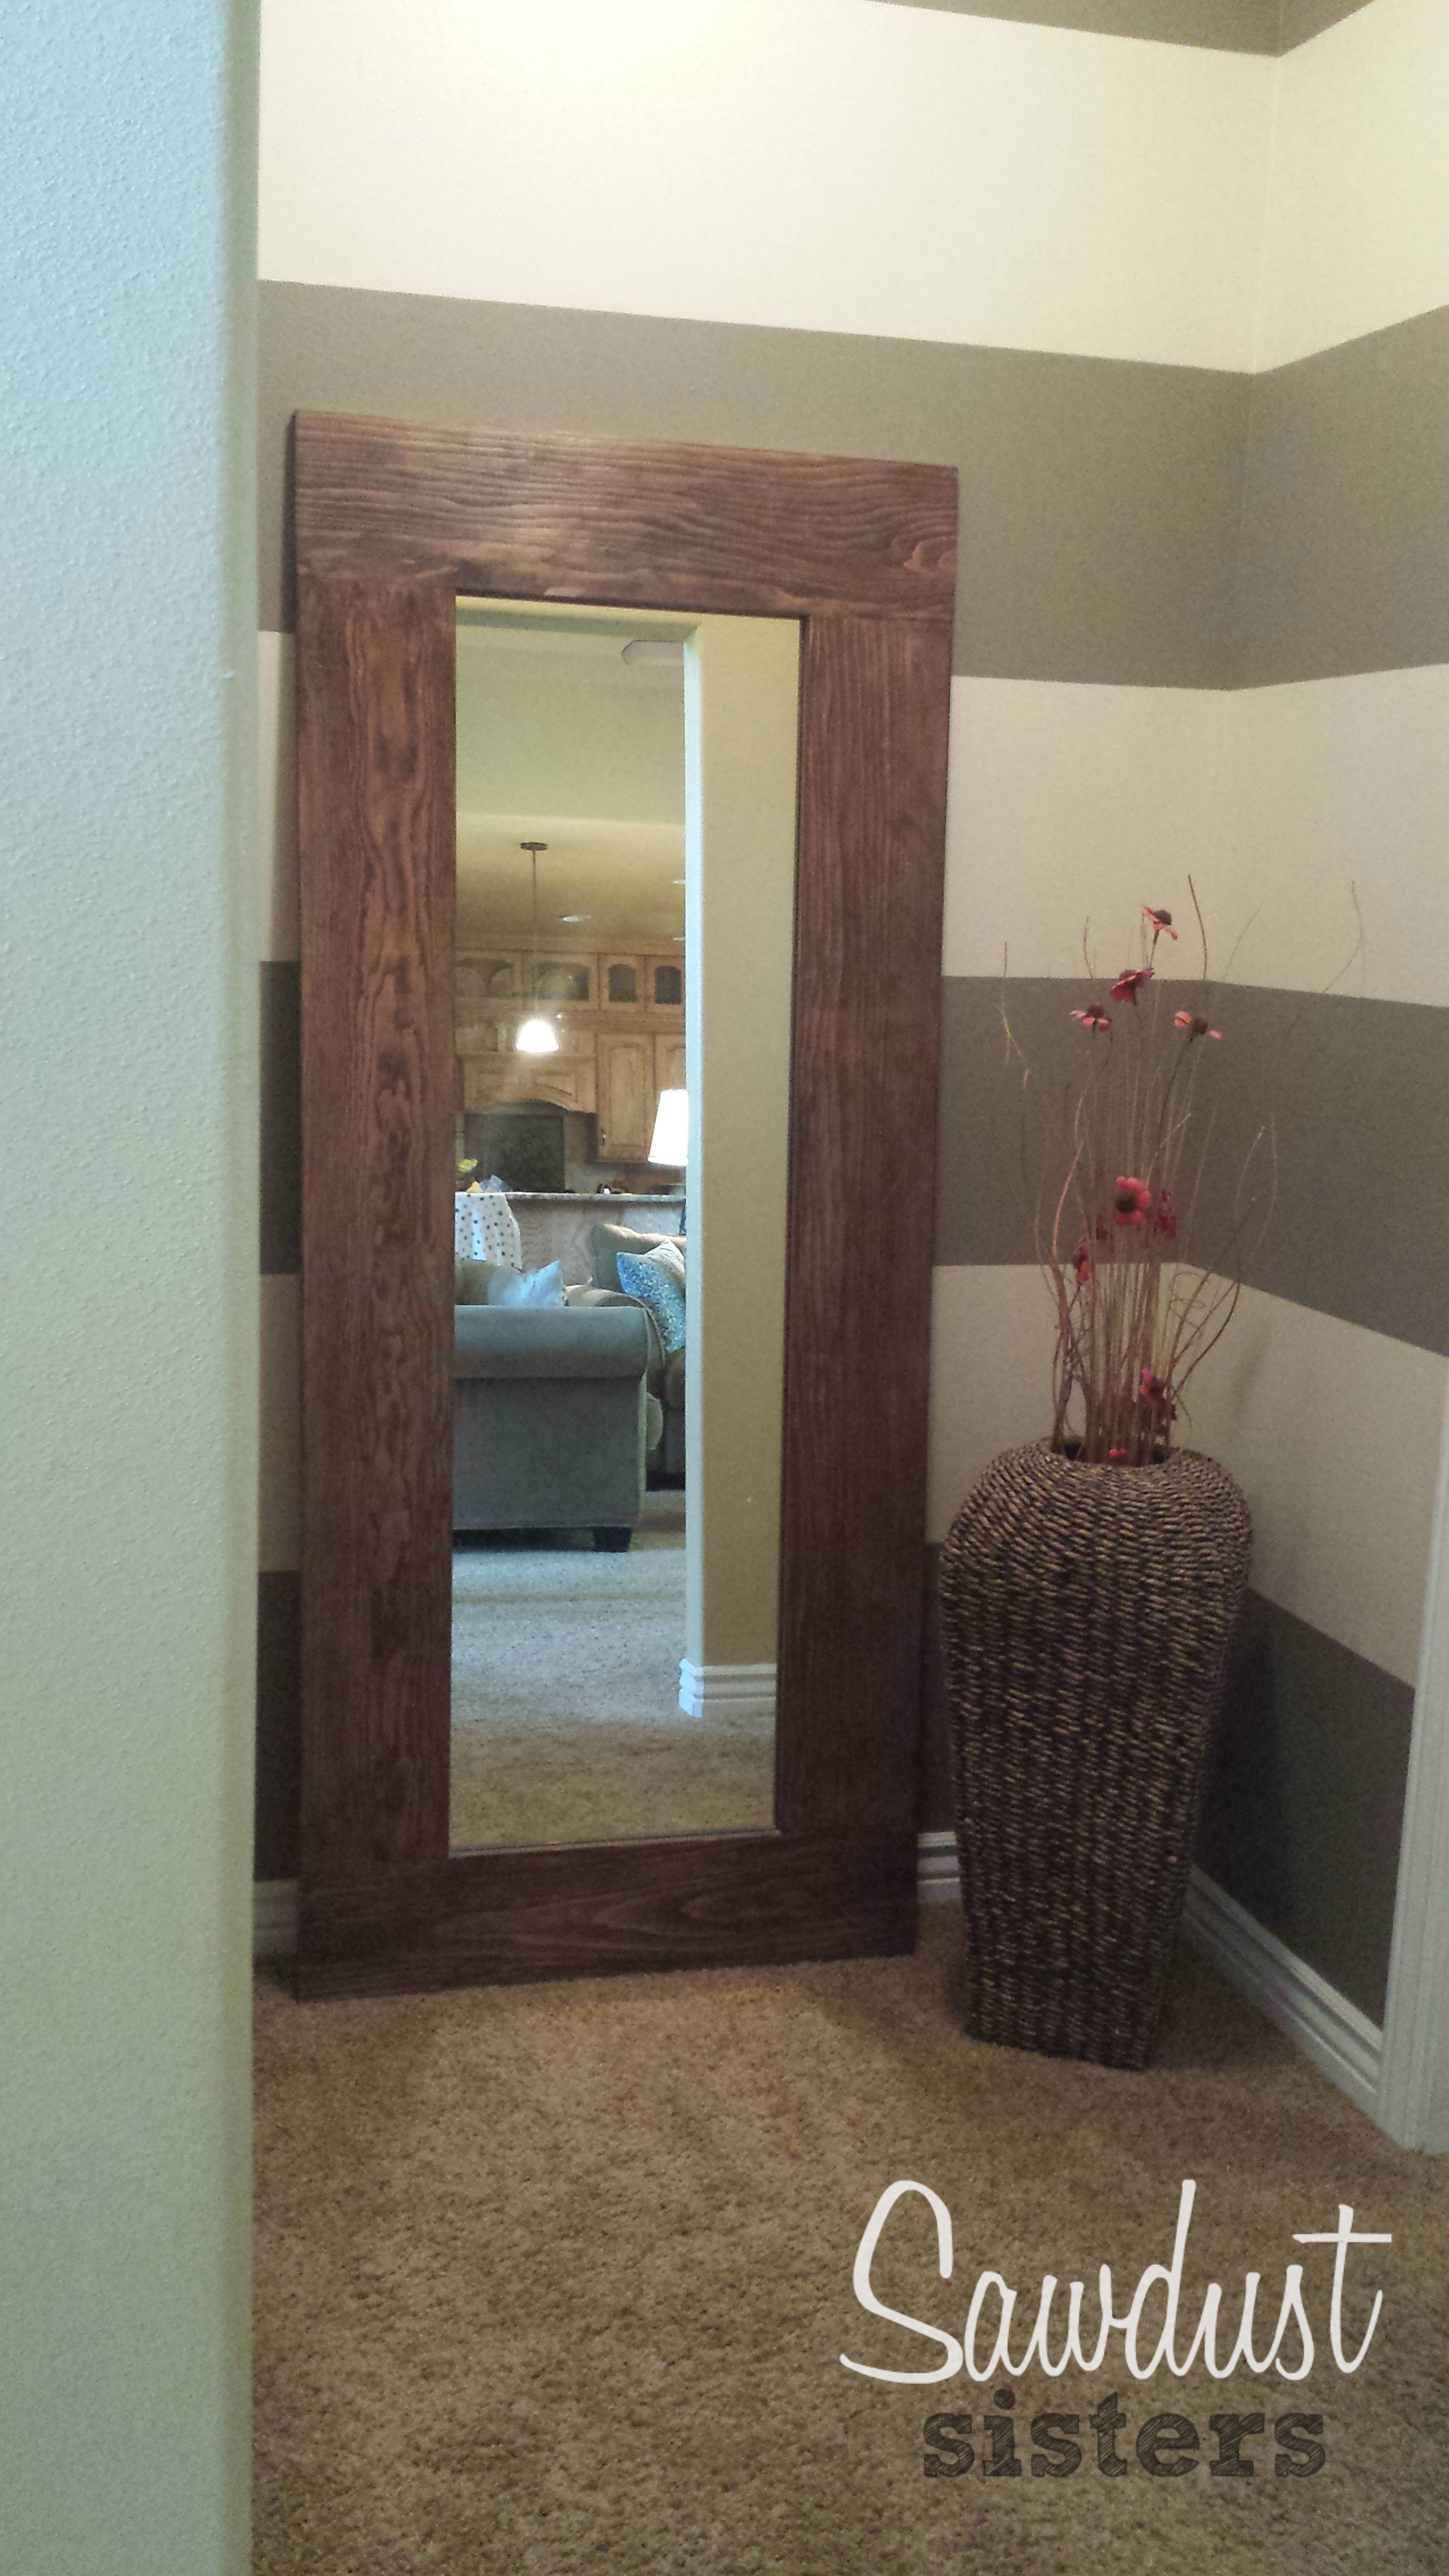 Diy Mirror Frame A Salvaged Using Wood Glue And Staple Gun This Is Such An Easy Project Step By Tutorial With Links For Supplies